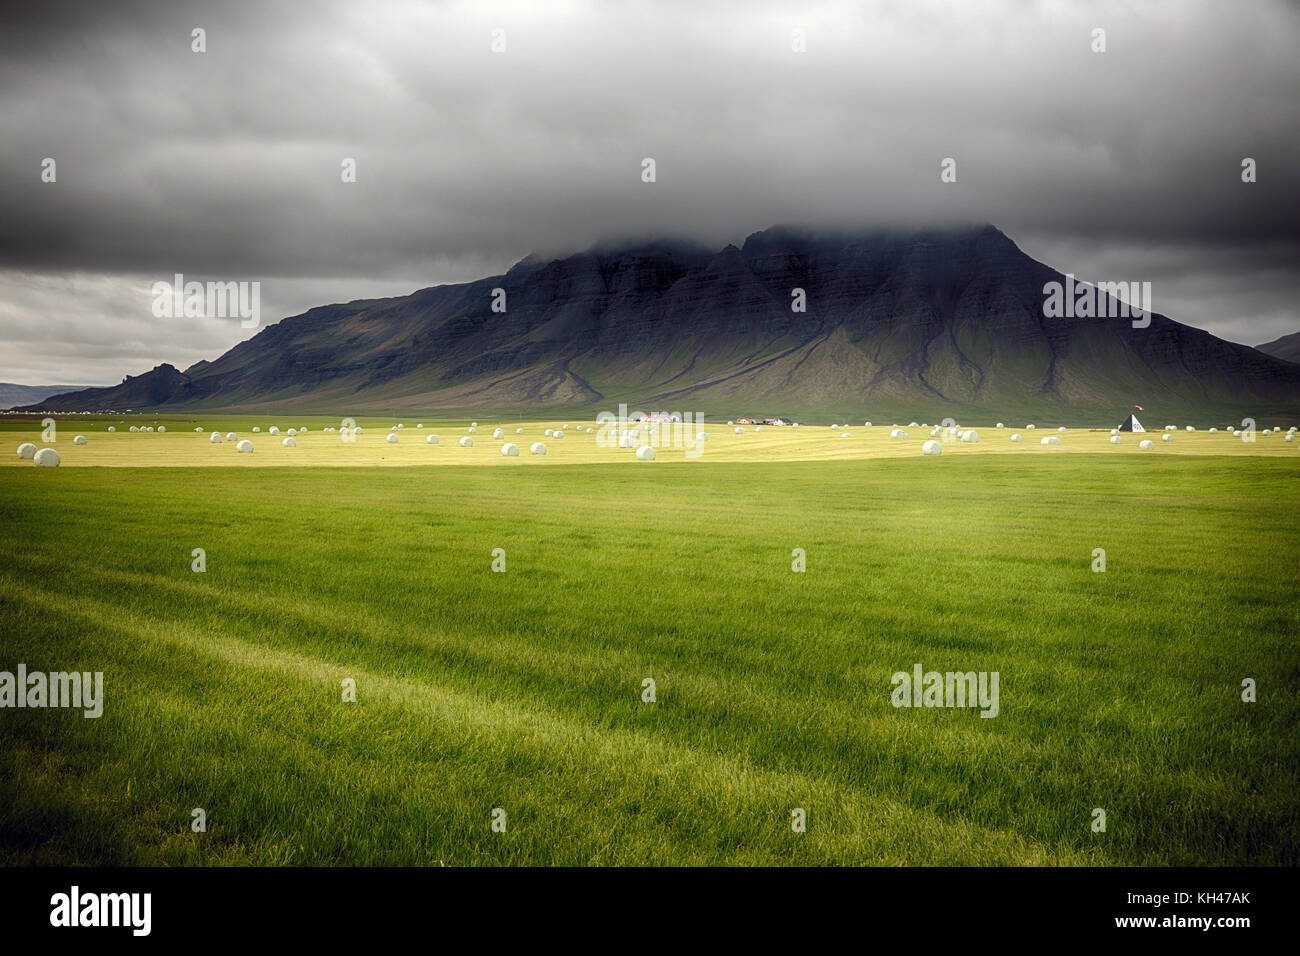 Green Pastures with Hay Bales in the Snaefellsnes Peninsula, Southwestern Iceland - Stock Image